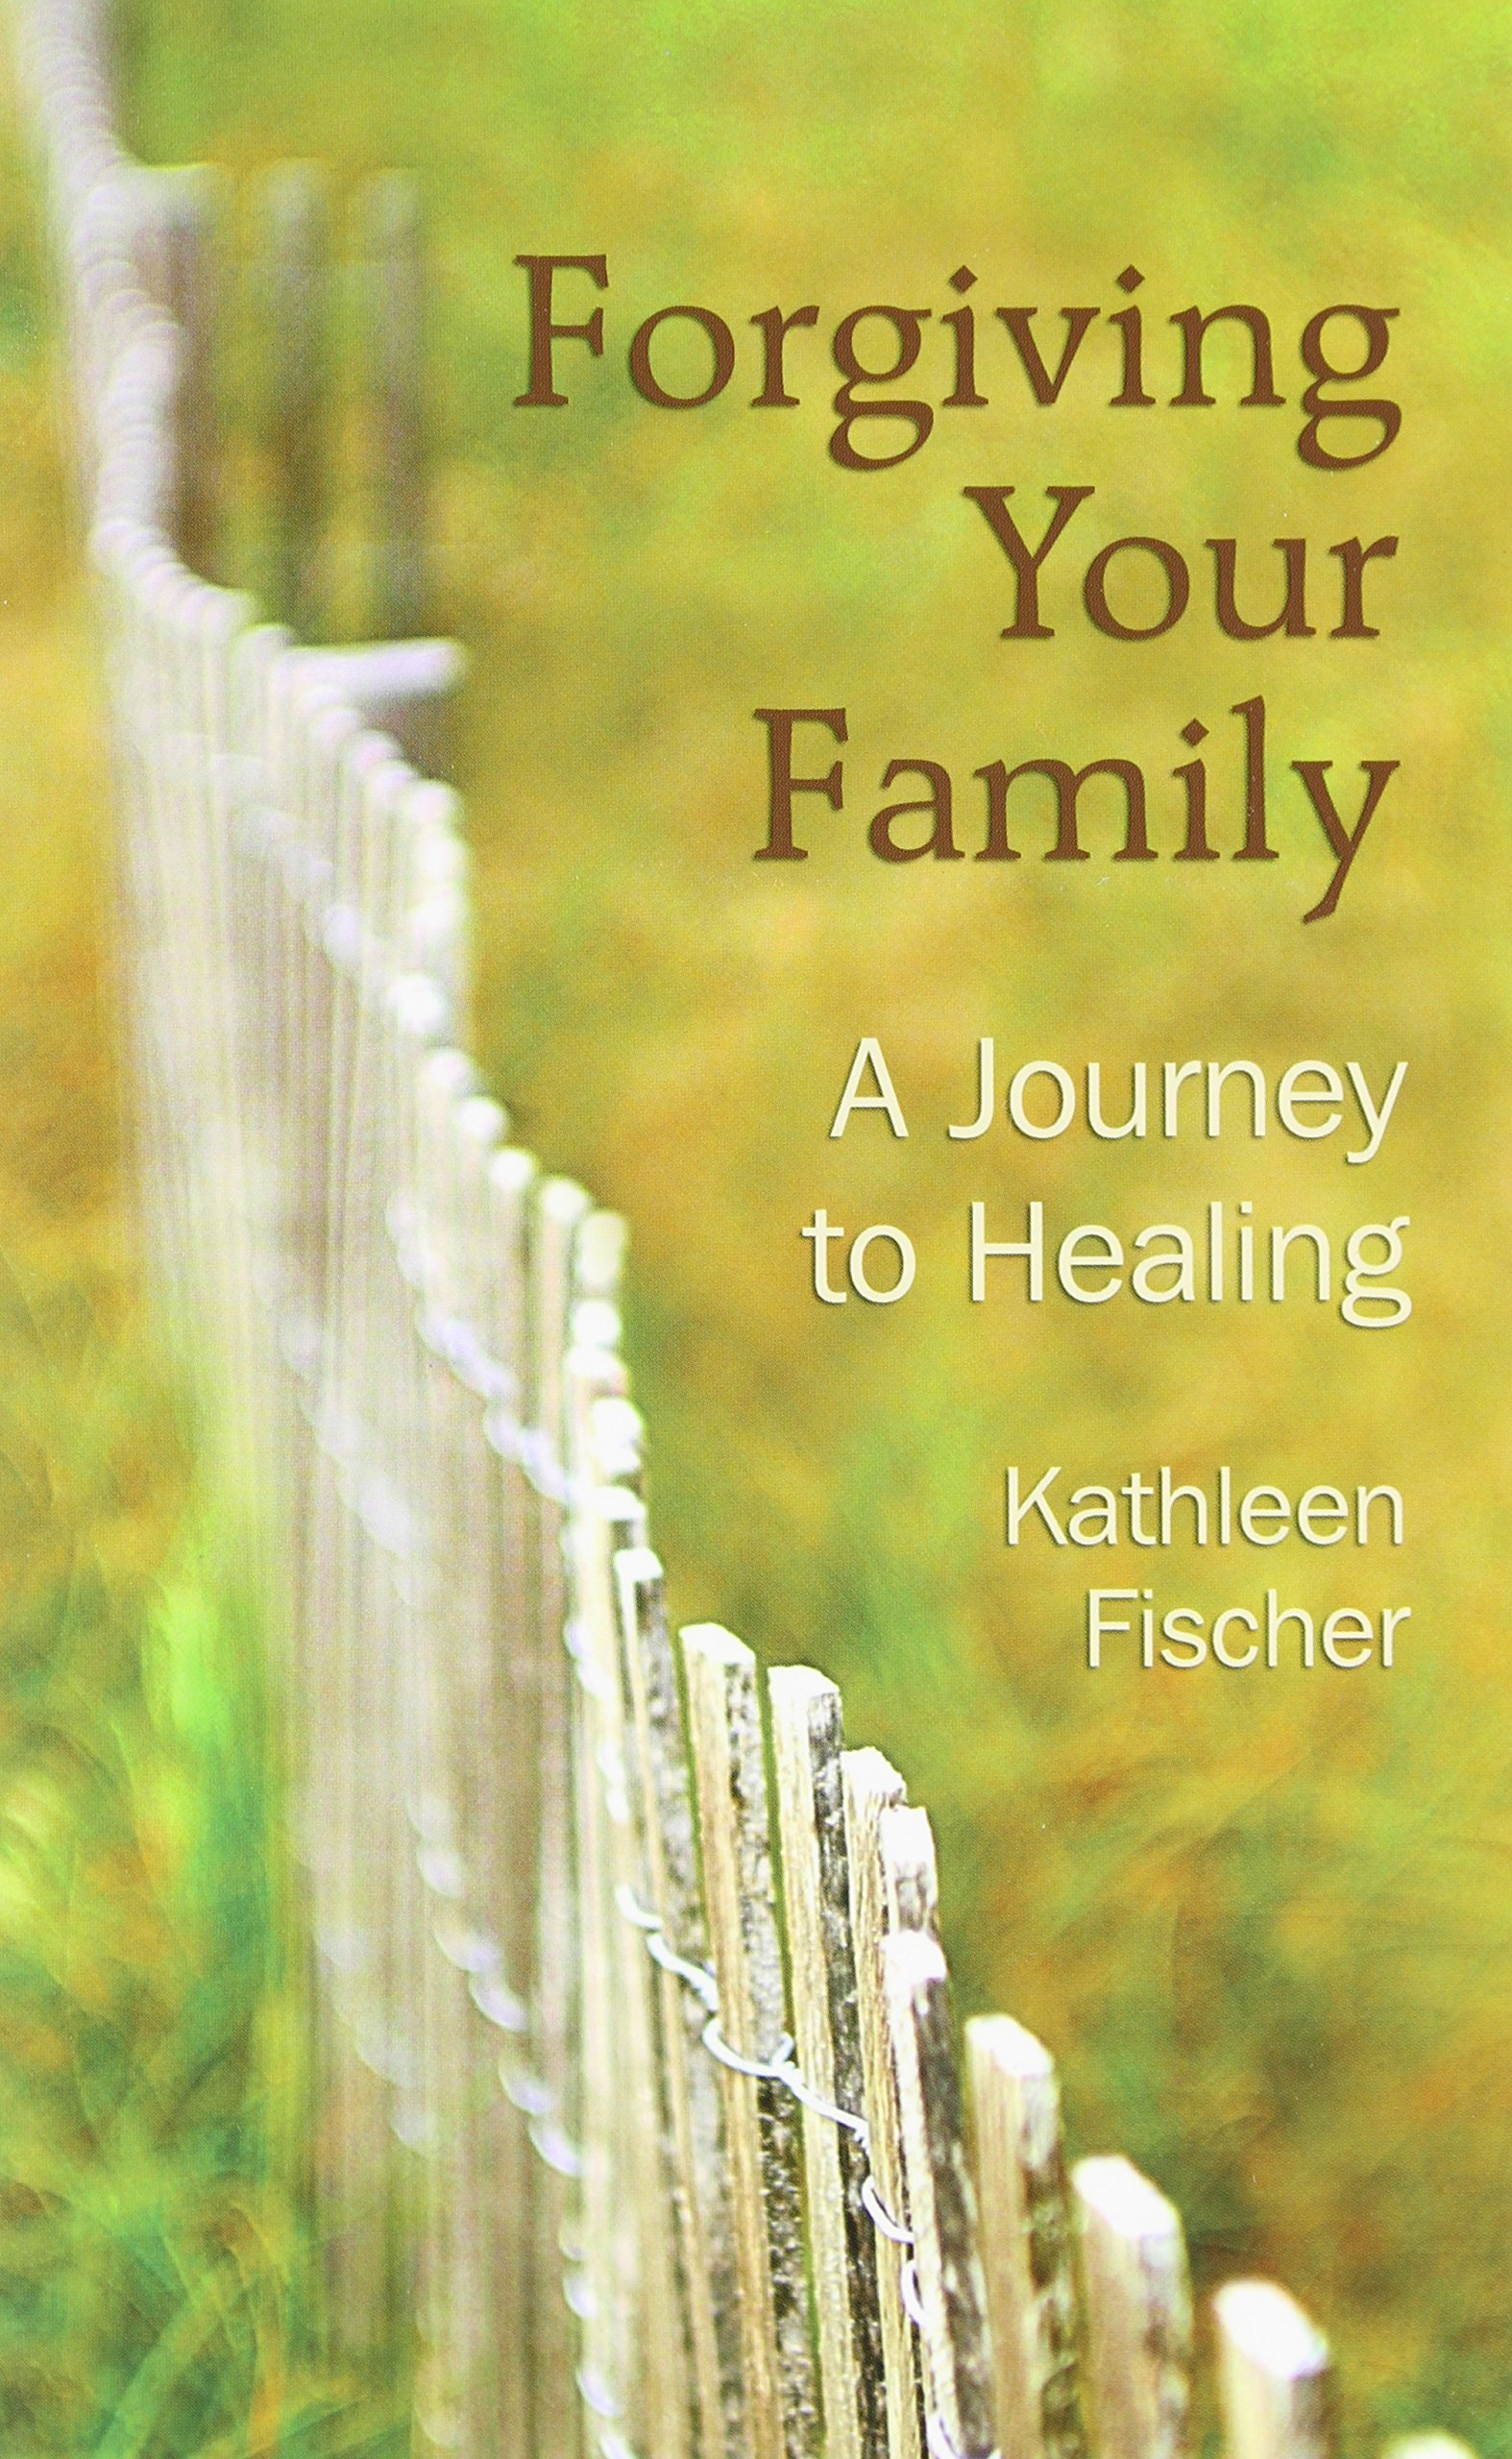 A Journey to Healing